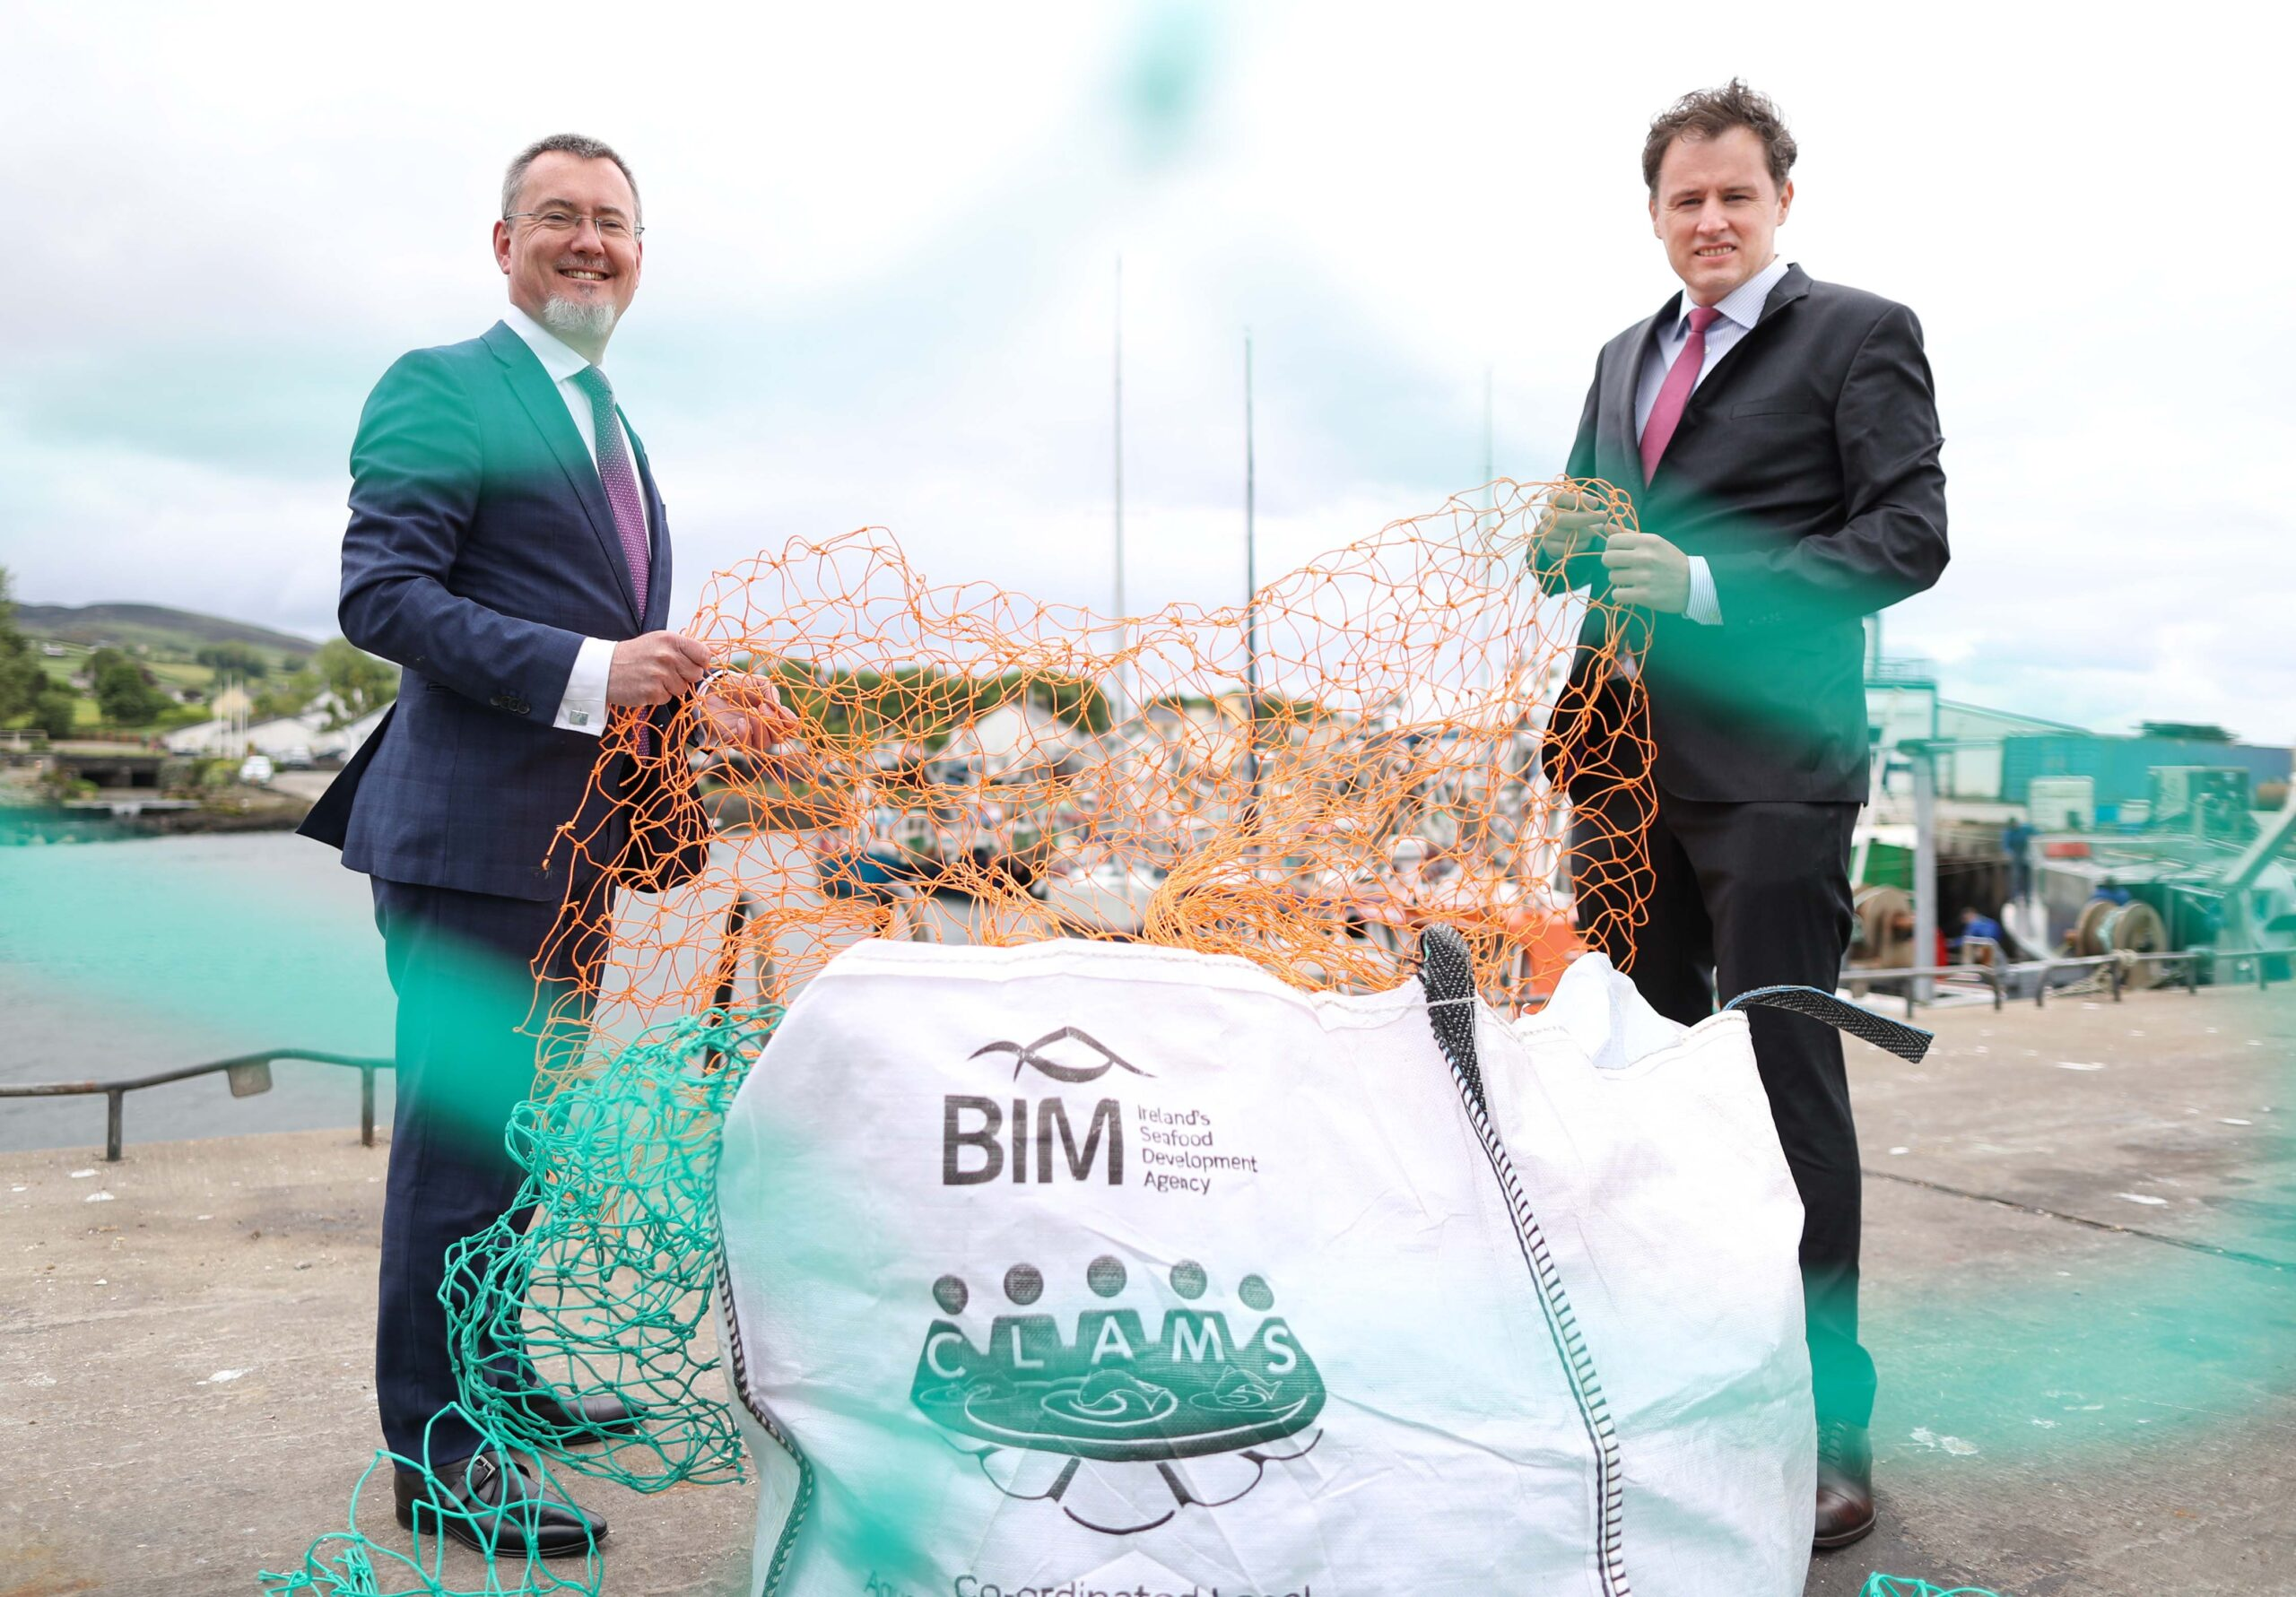 Minister McConalogue announces over 600 tonnes of marine waste collected by Ireland's seafood sector since 2015